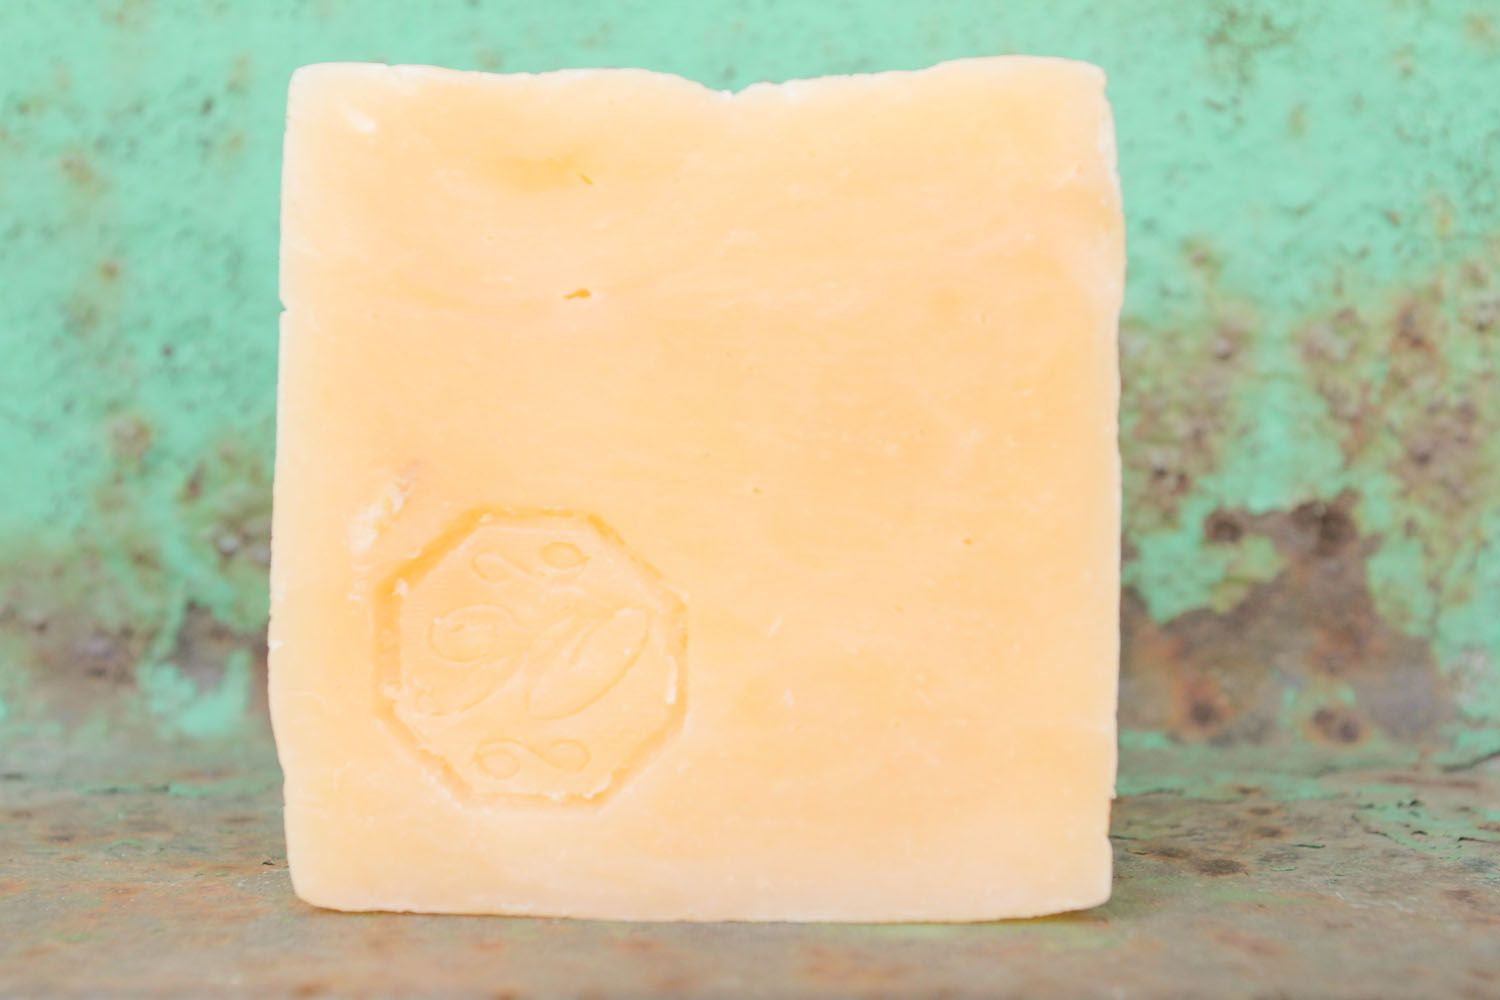 Homemade soap with fruit aroma photo 5